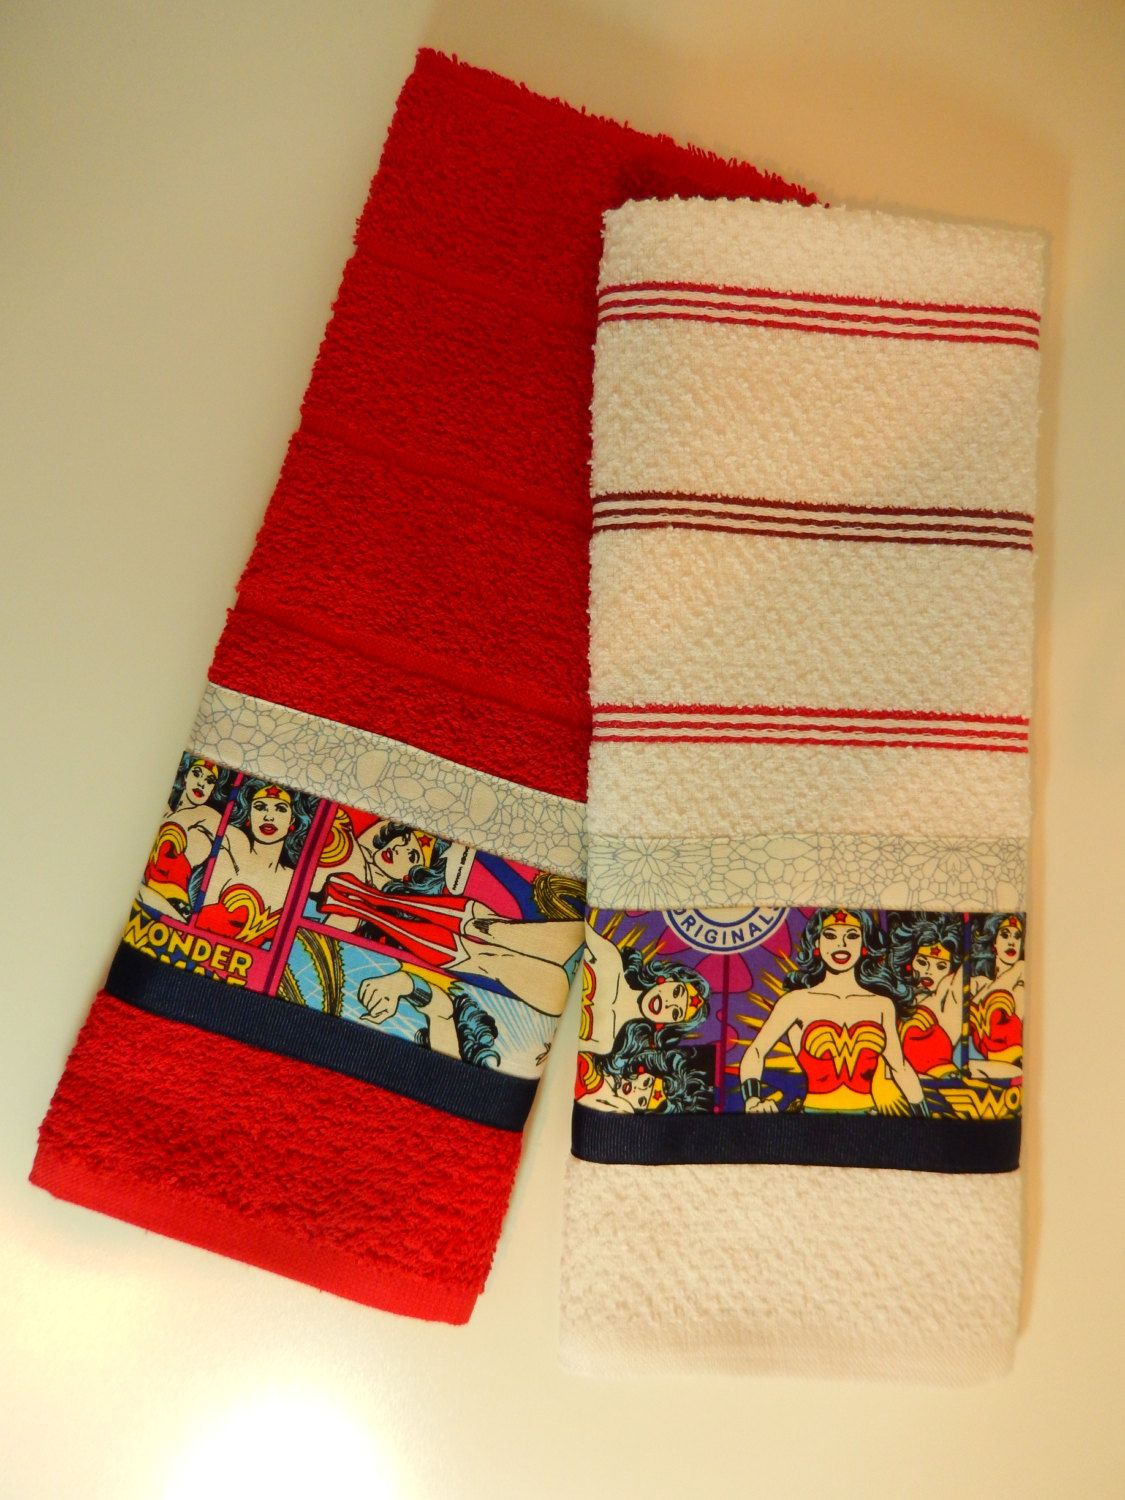 Wonder woman hand towels kitchen towel set by zanymousecreations on etsy